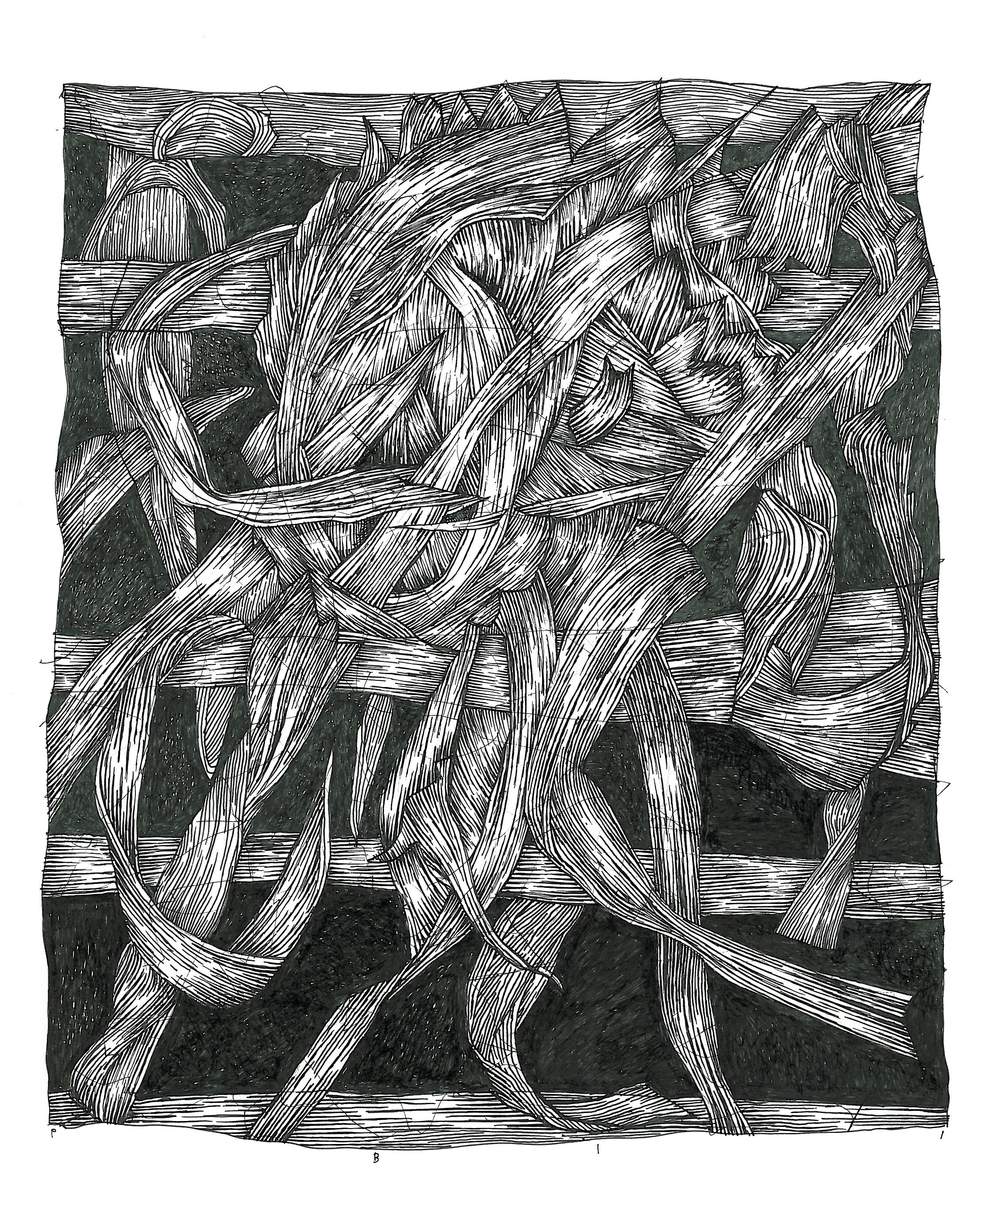 "Pen and Ink - 7"" x 8"" - 2011"